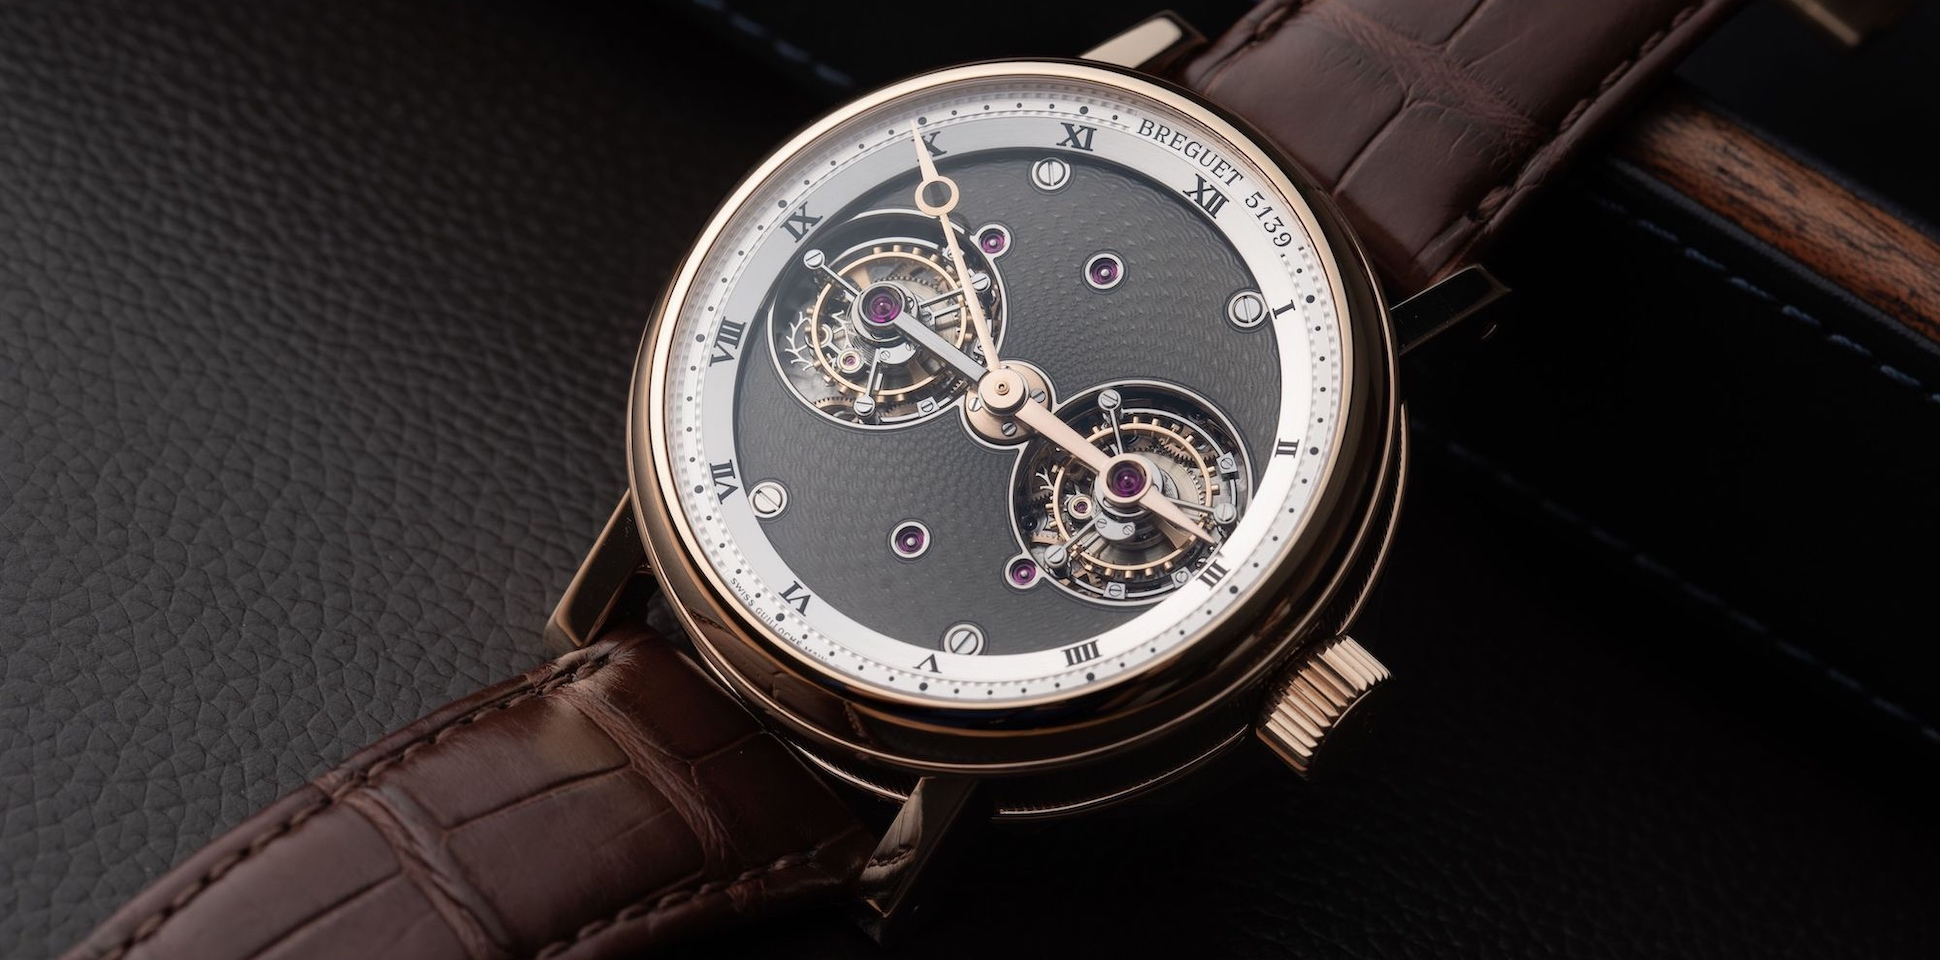 Breguet Double Tourbillon 5347